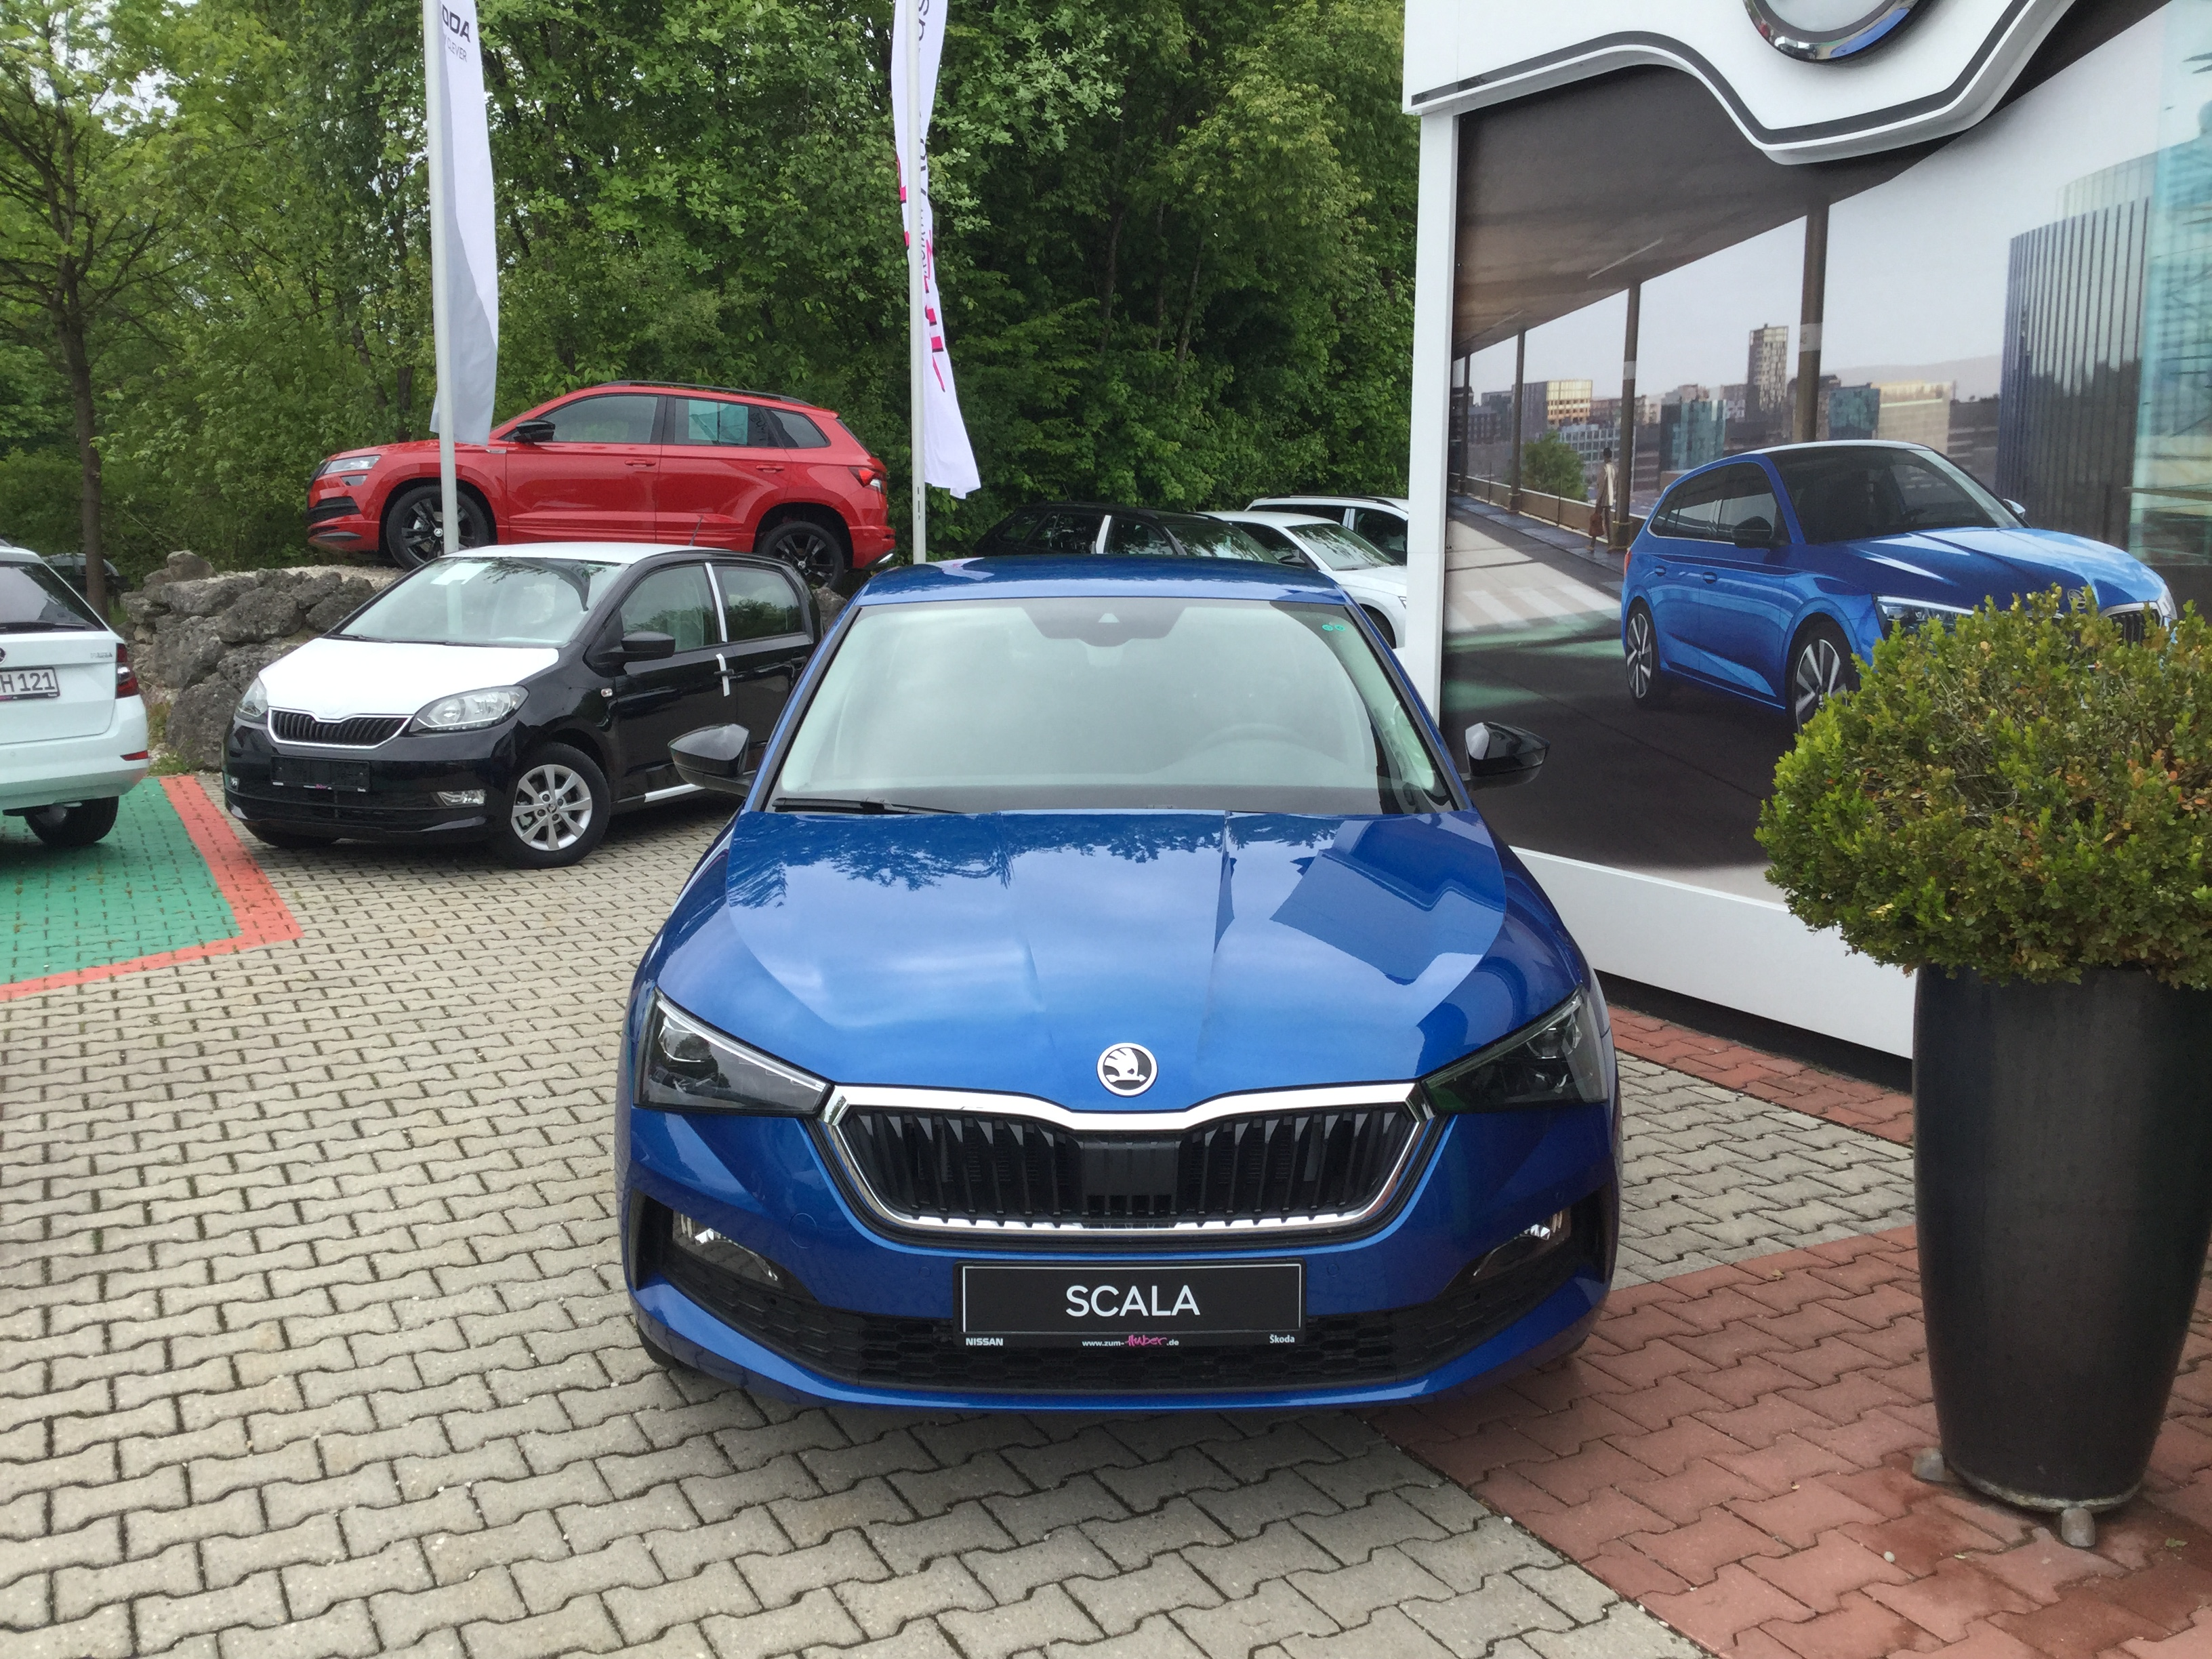 Scala 1.0 TSI 85KW Ambition